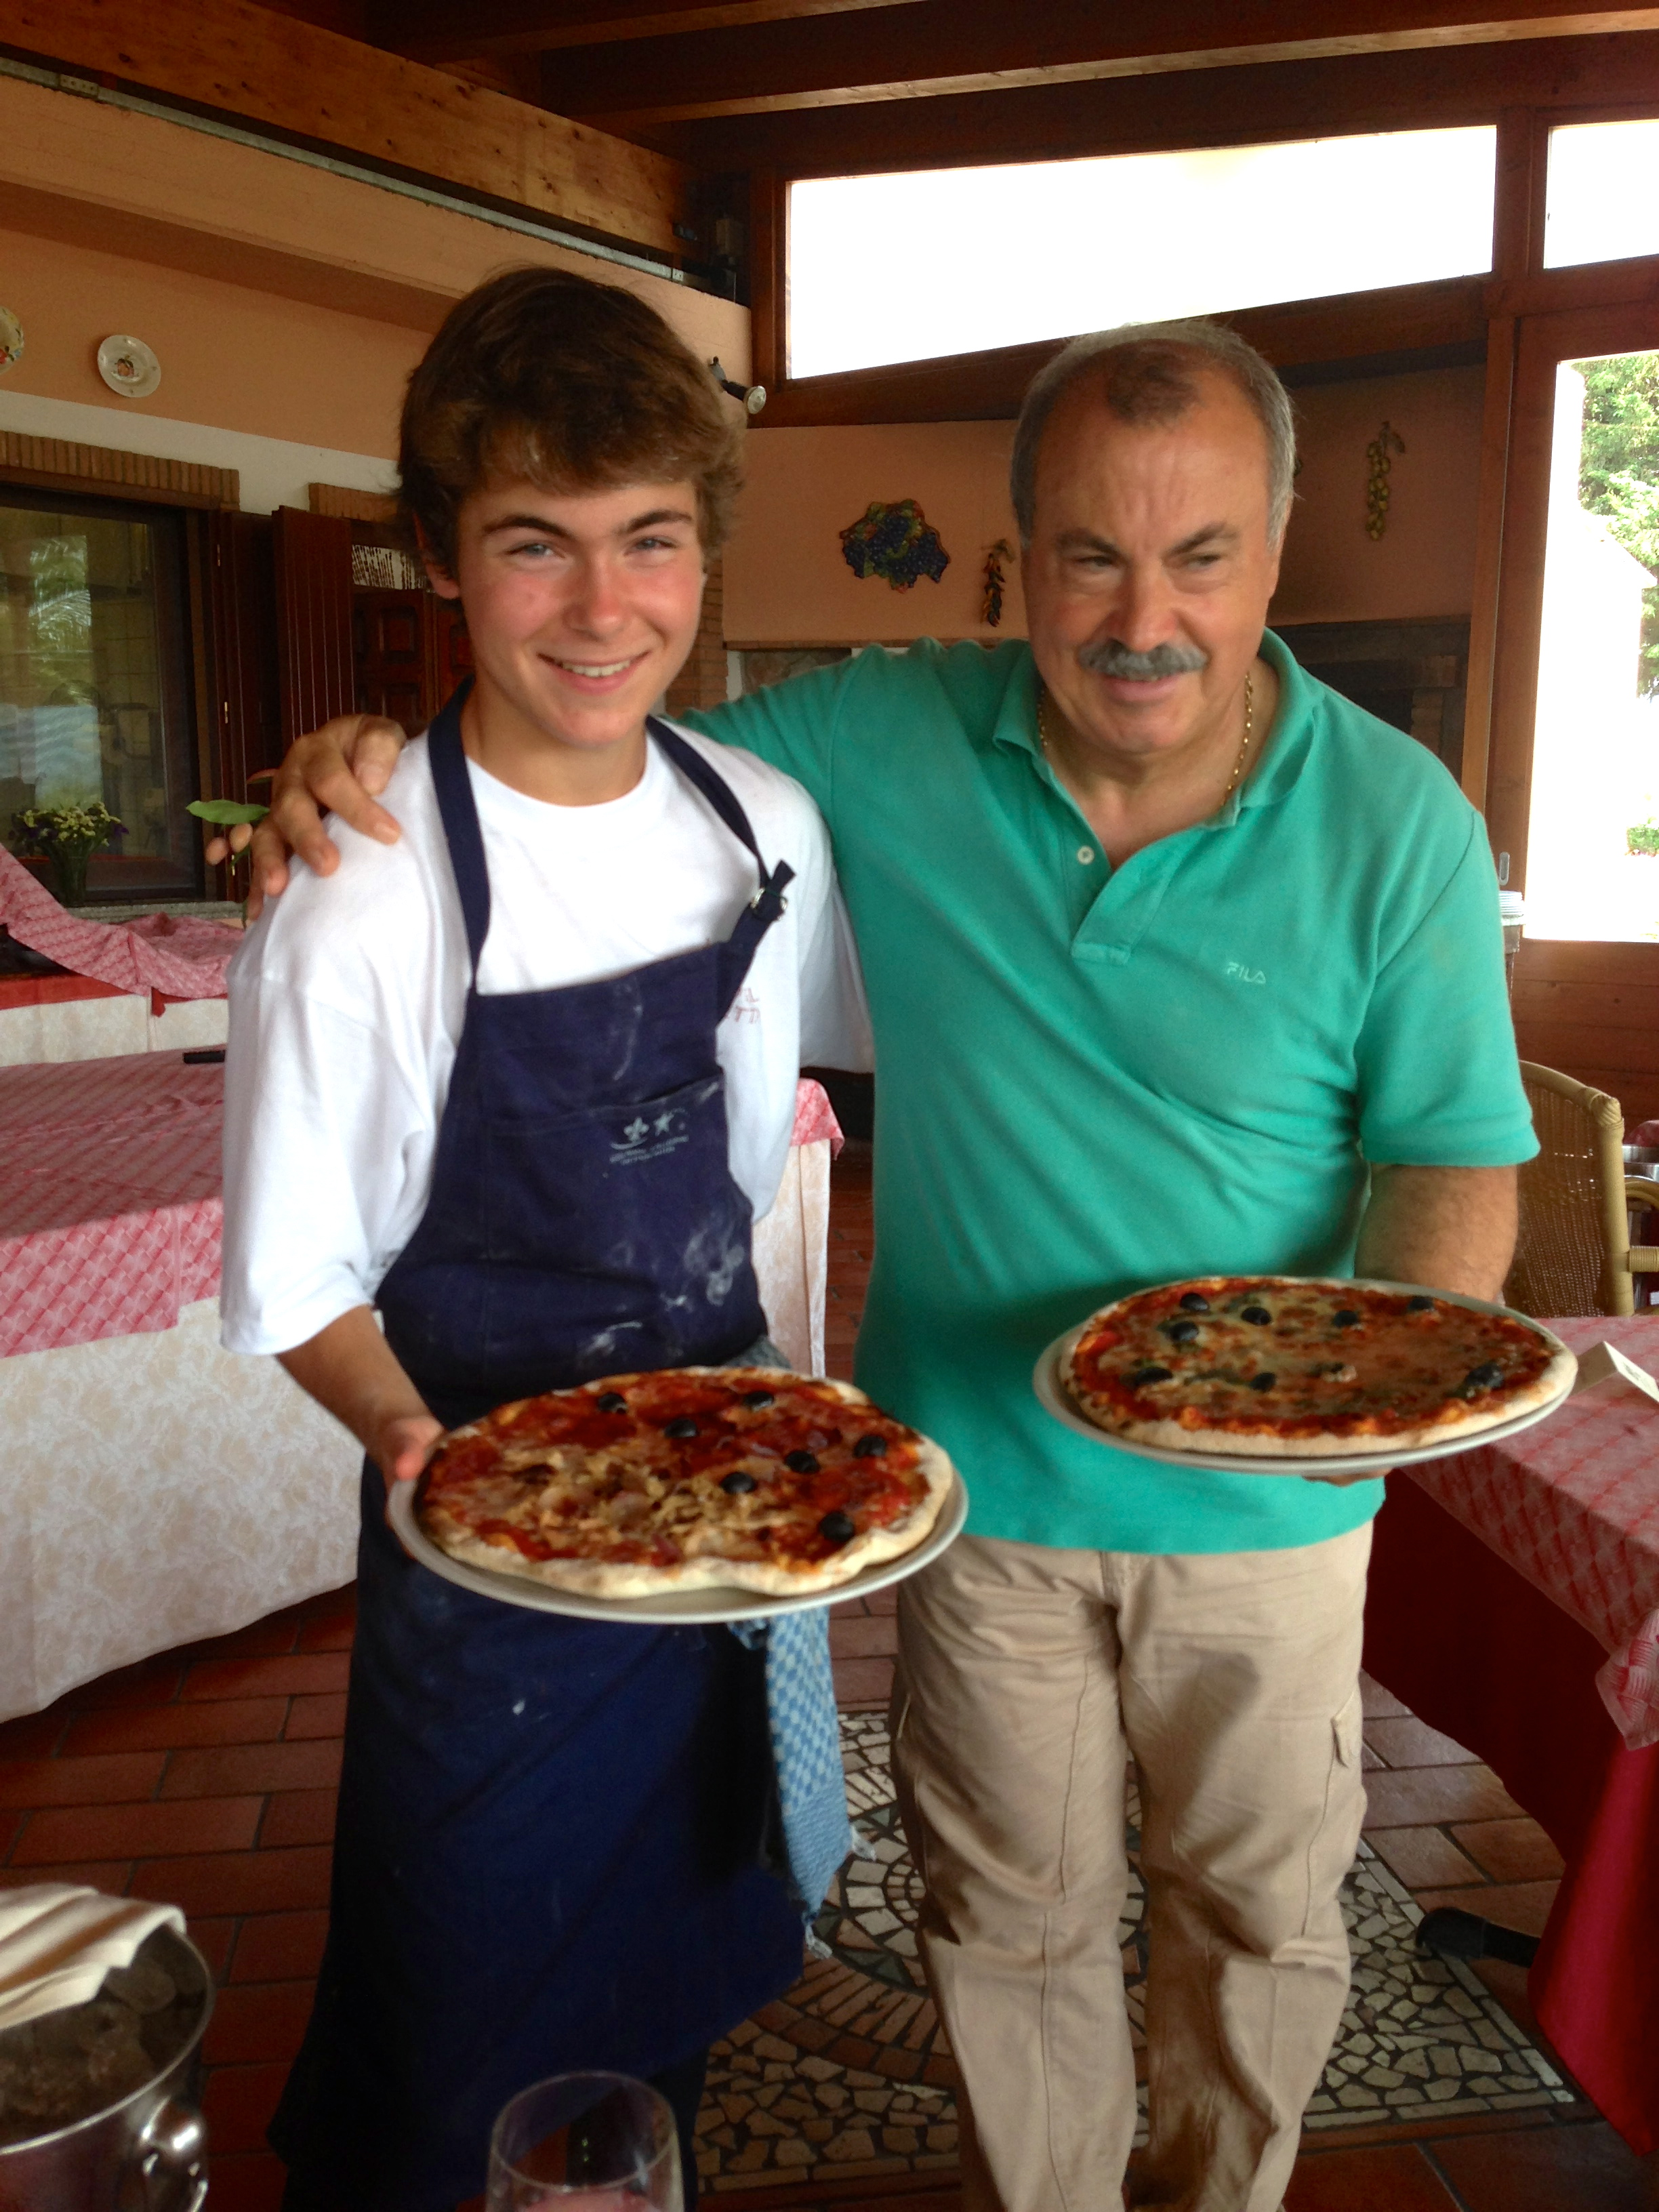 Luigi and me with my two first pizzas.